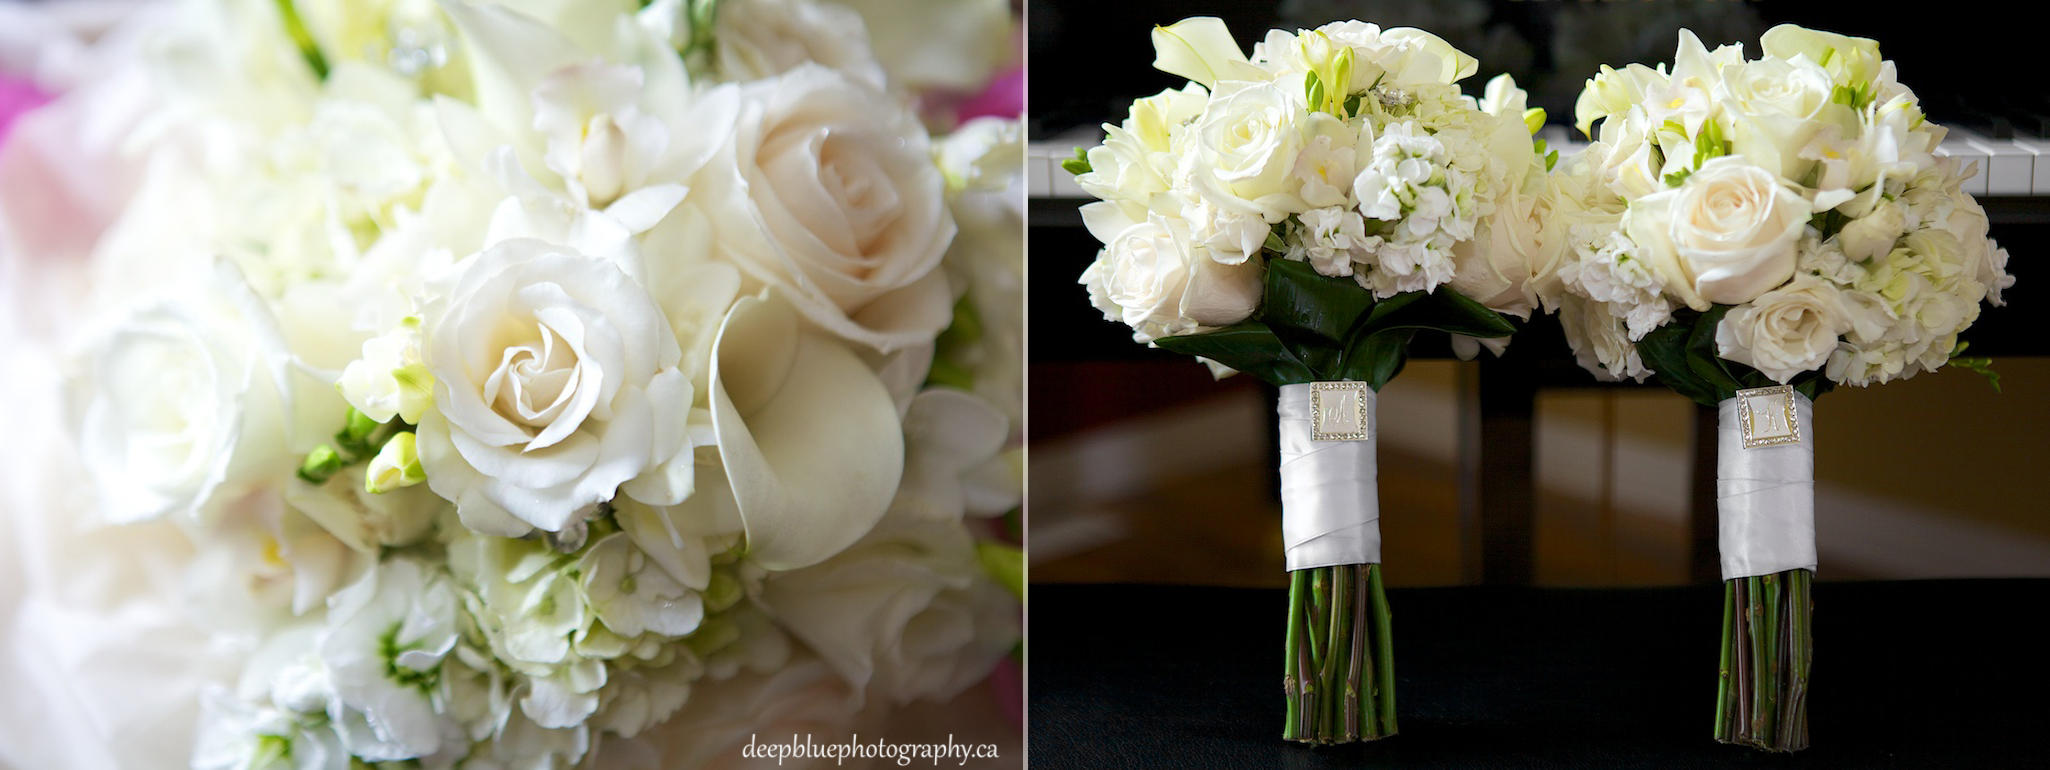 Krista and her Daughter's Bouquets